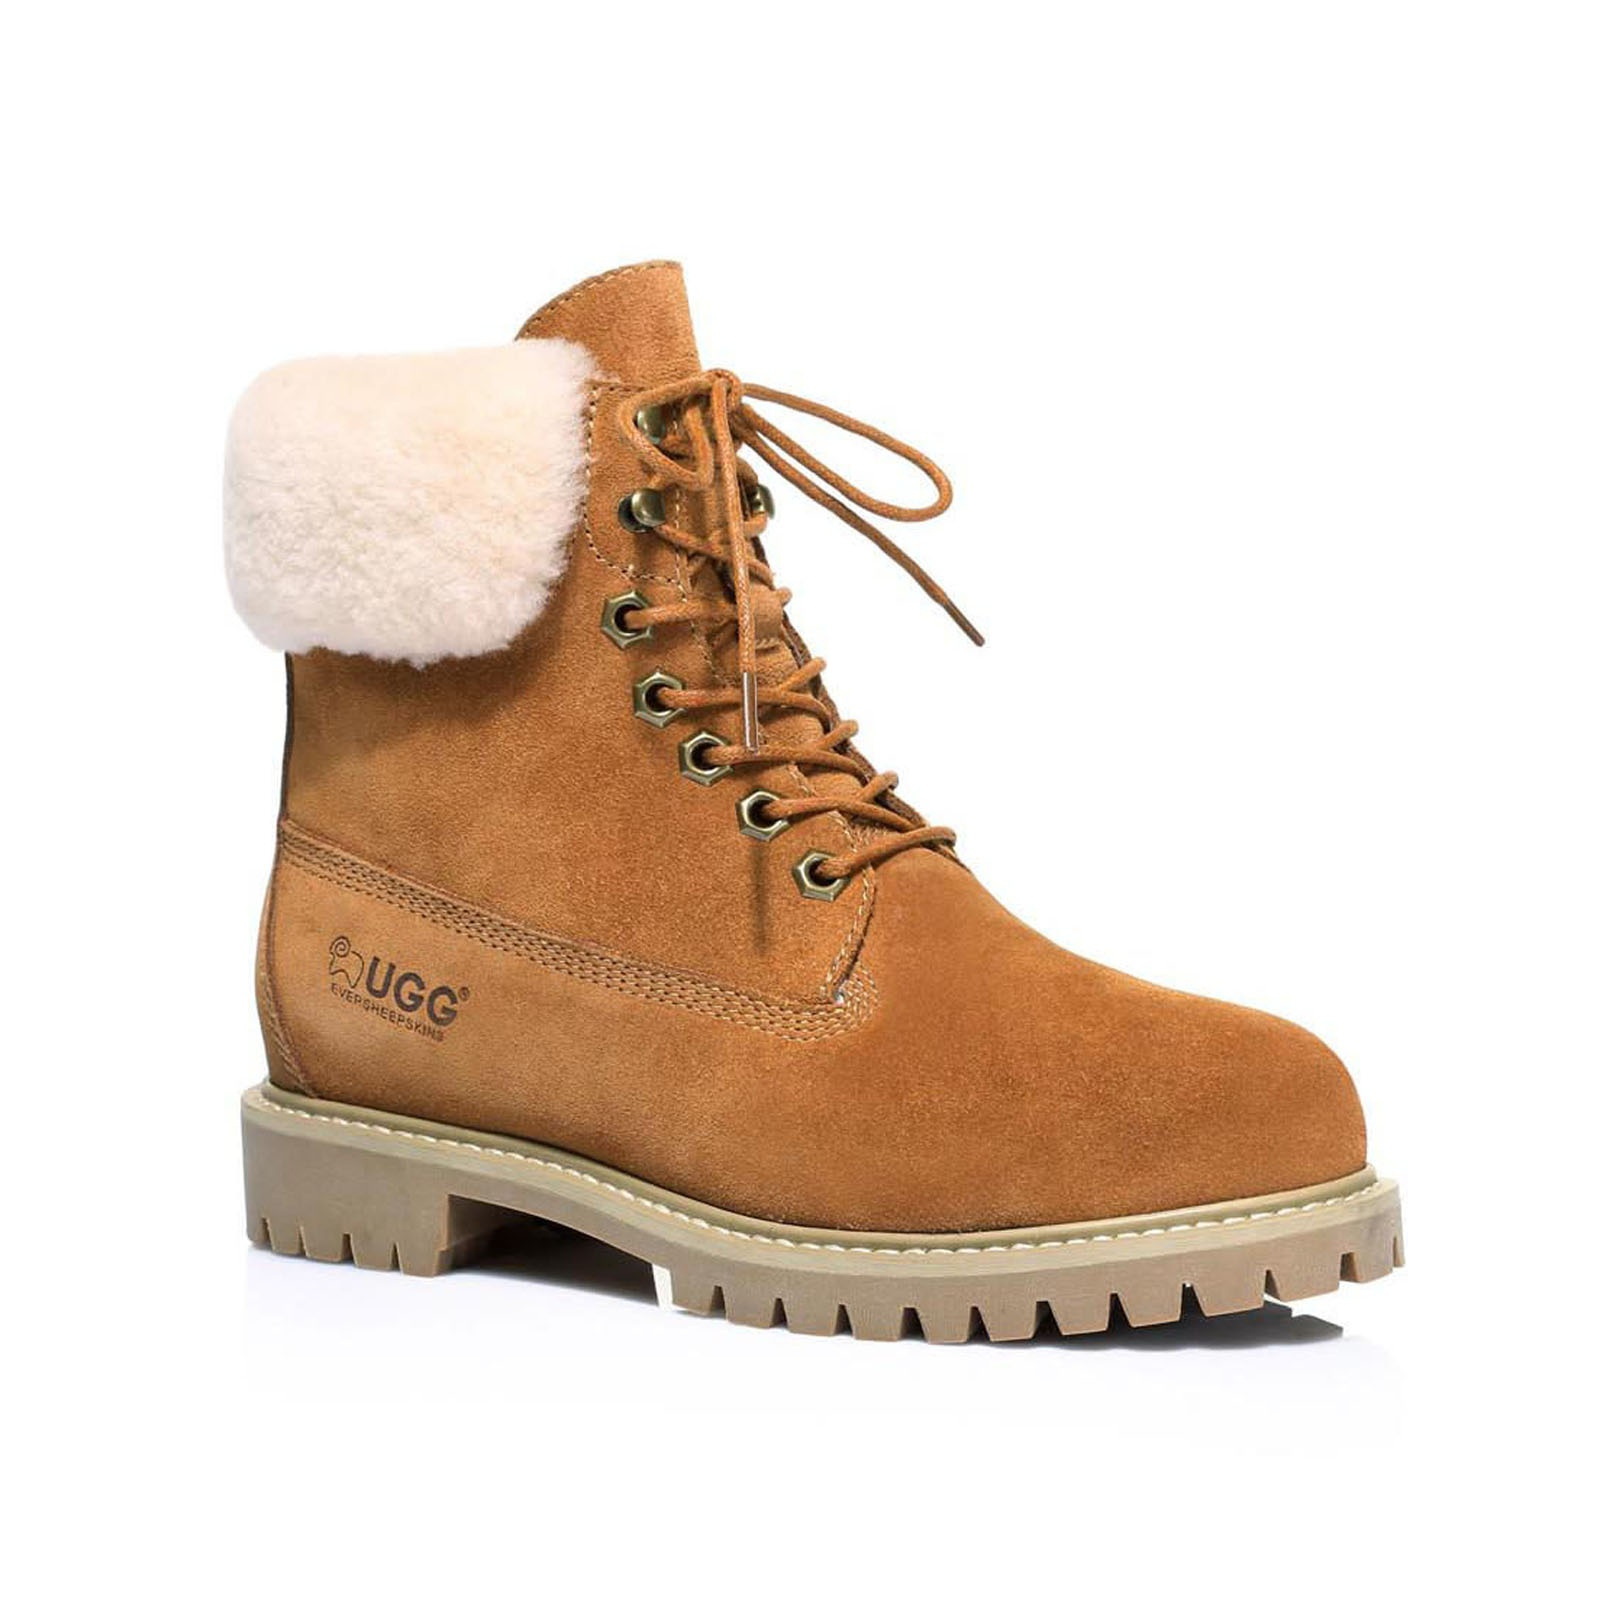 UGG-Boots-Australian-wool-Genuine-Hope-Ladies-Fashion-with-Front-Lace-lining thumbnail 5